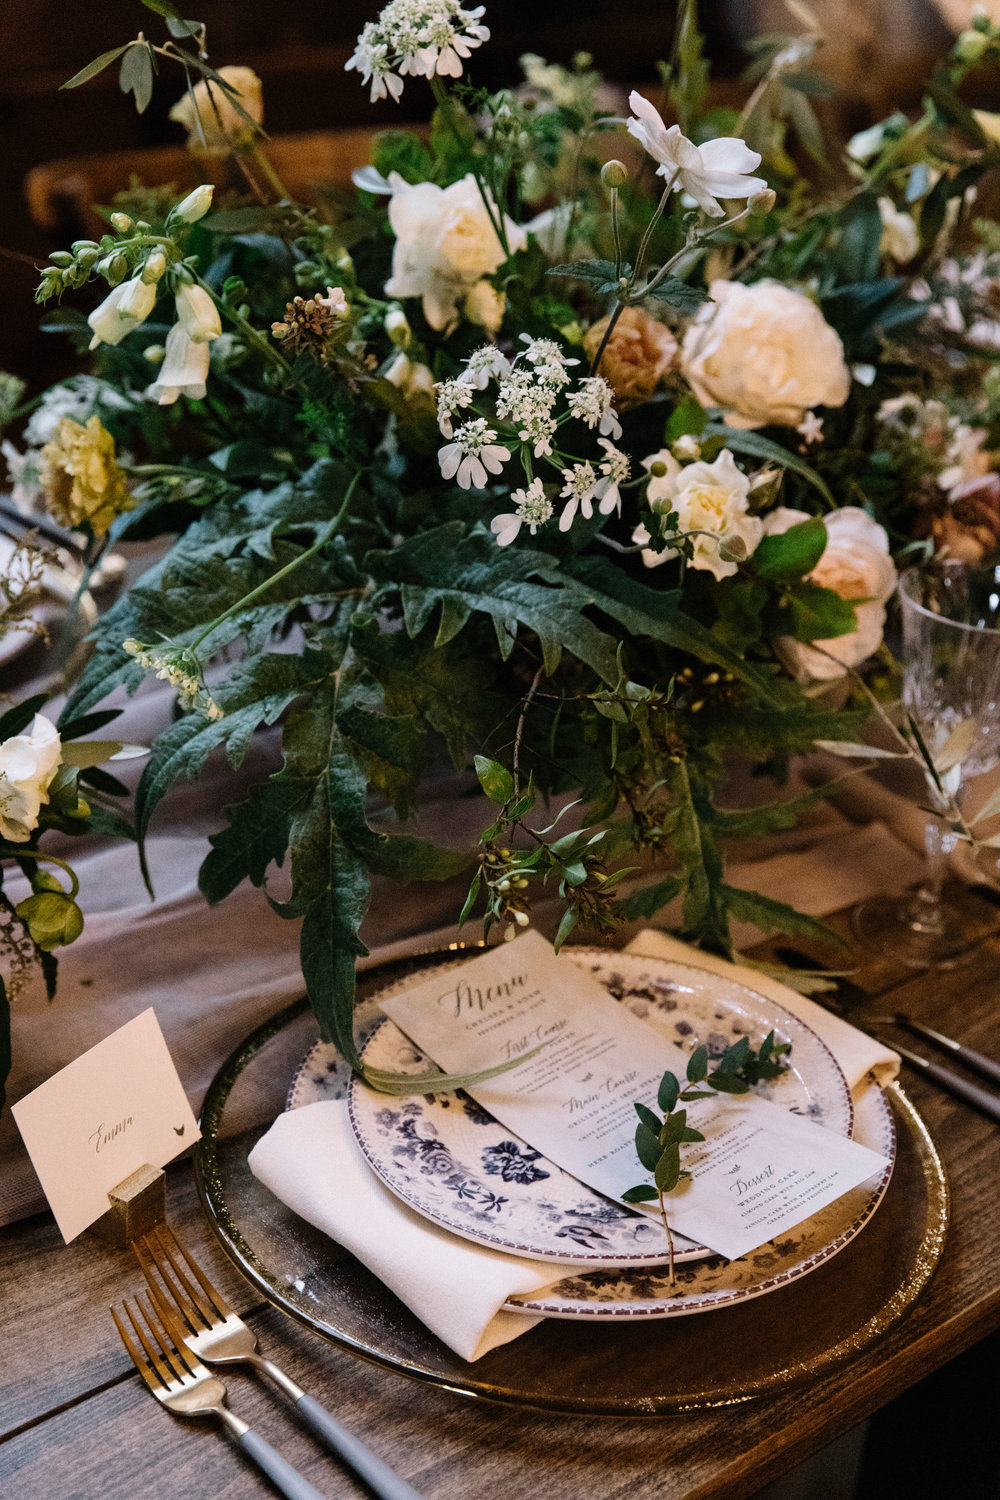 Lush and natural wedding inspiration with lots of greenery by Venn Floral in Sonoma County photographed by Lucille Lawrence